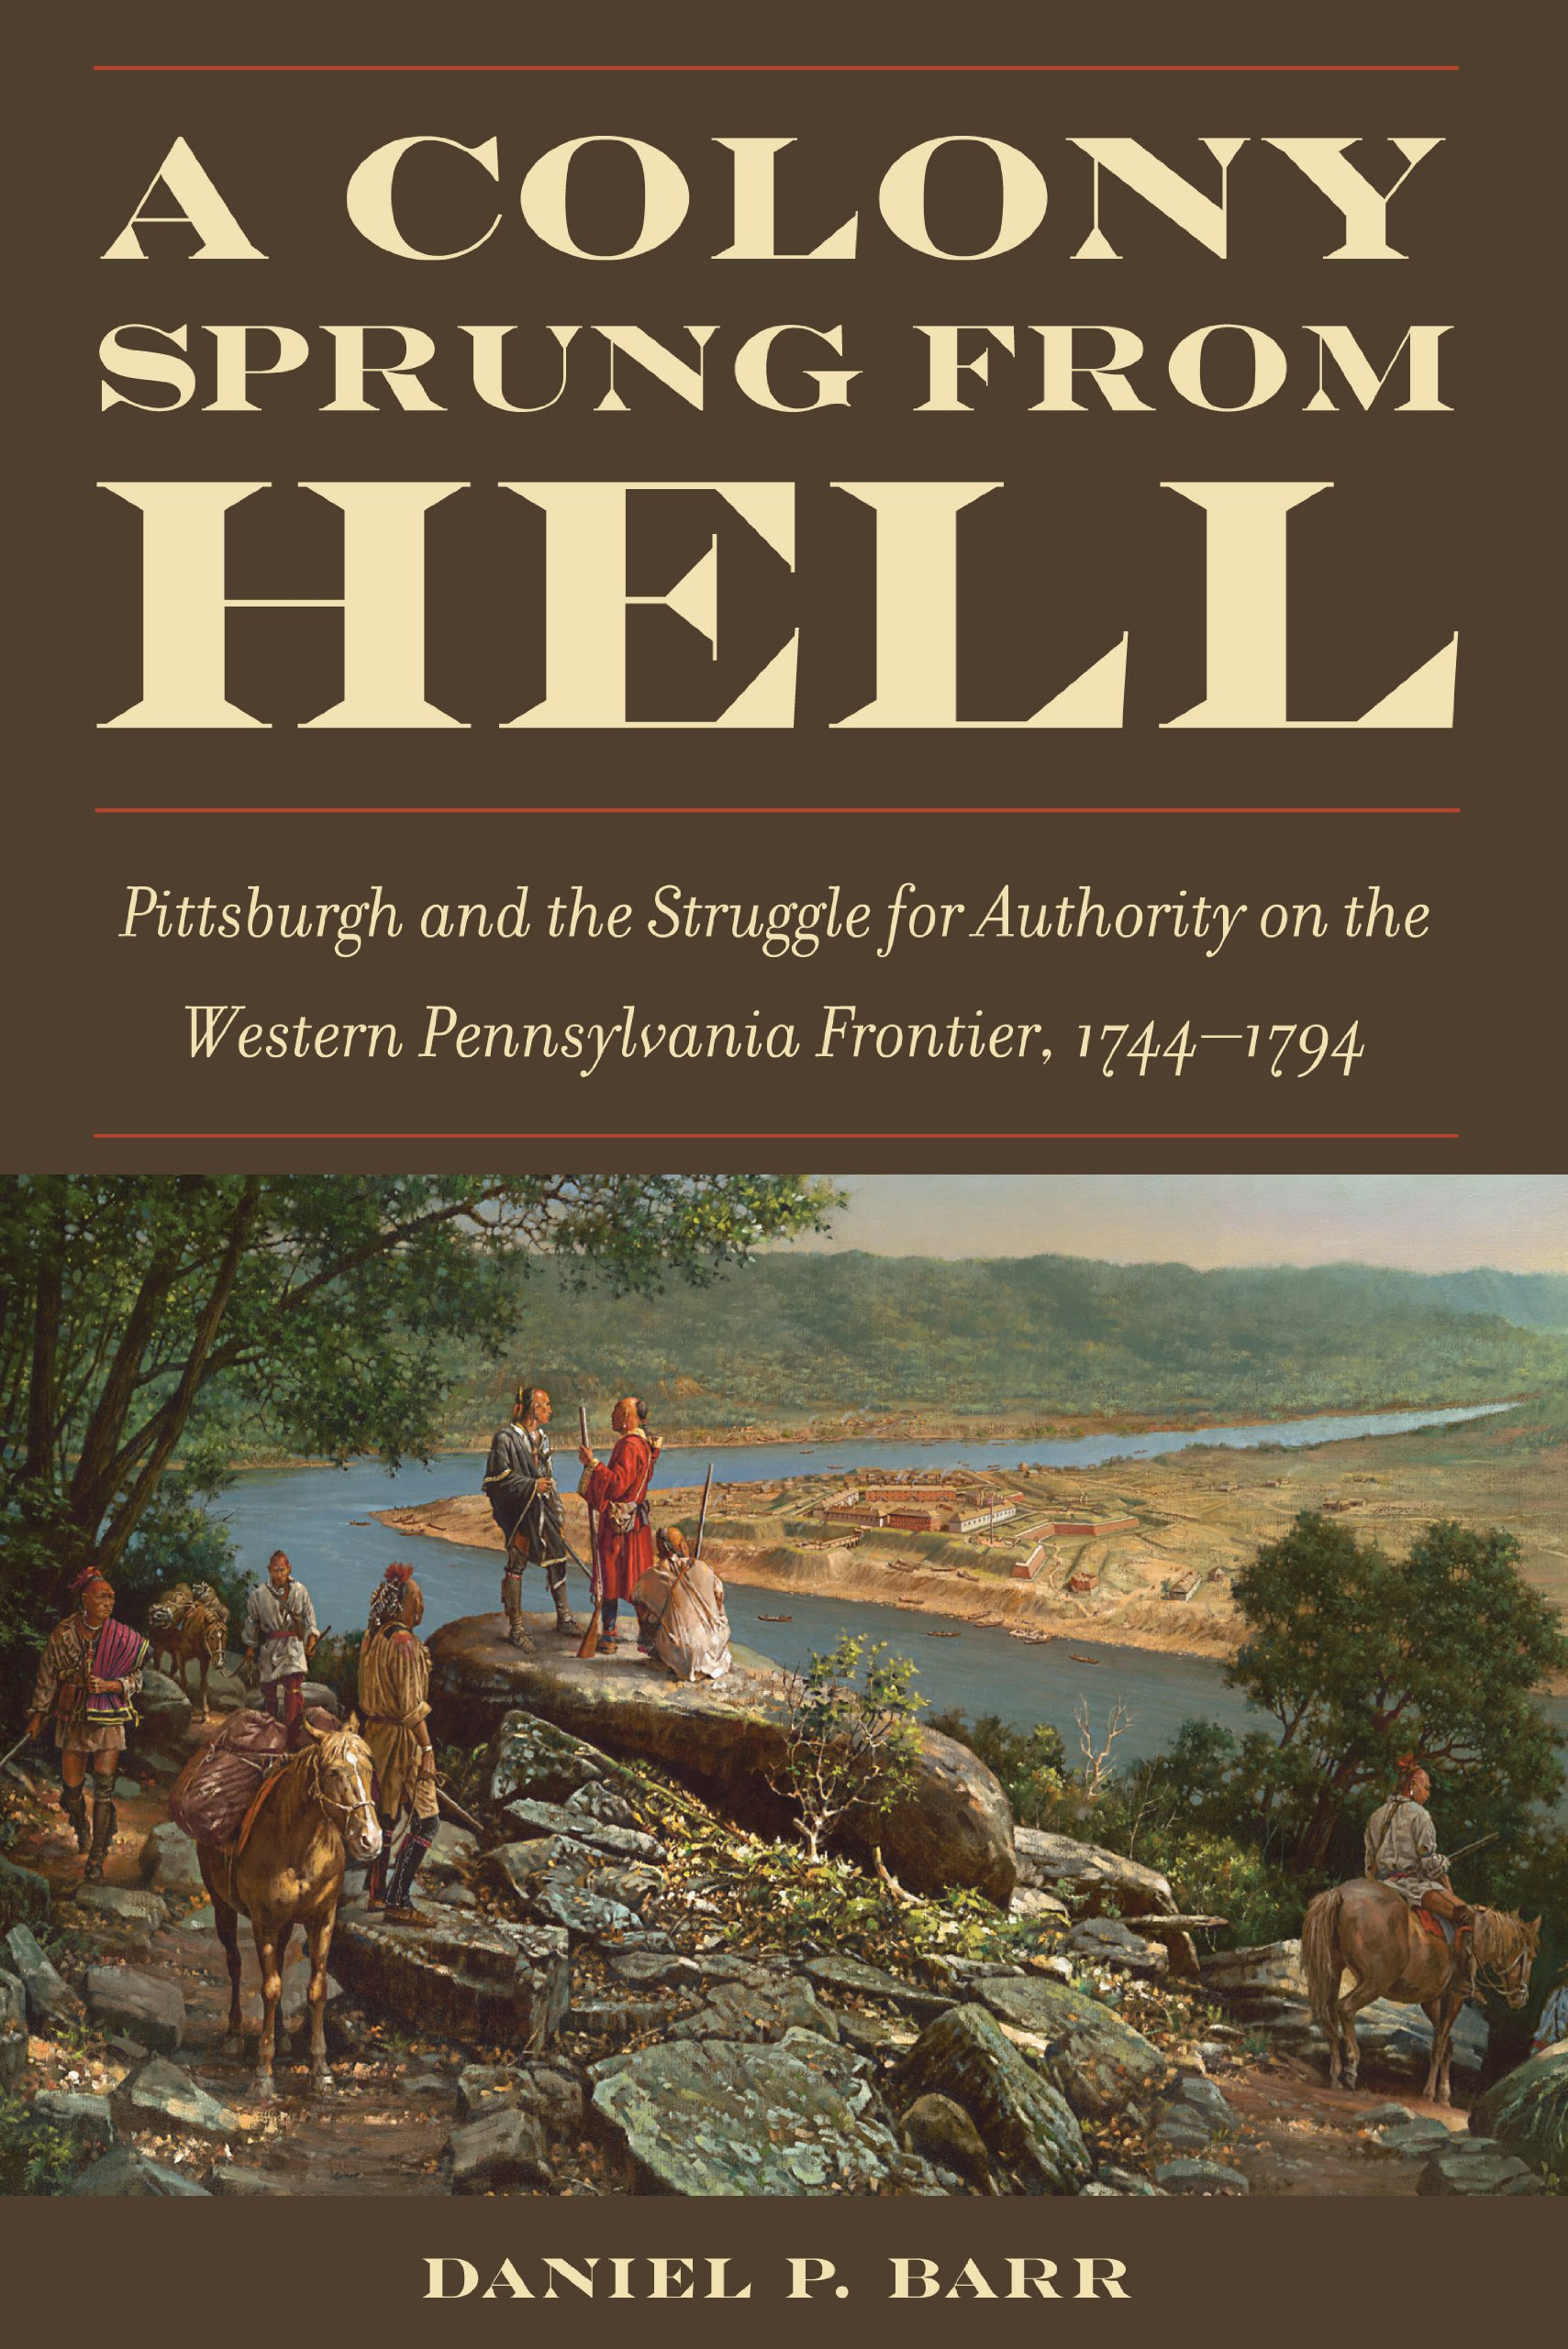 Download A Colony Sprung from Hell: Pittsburgh and the Struggle for Authority on the Western Pennsylvania Frontier, 1744-1794 pdf